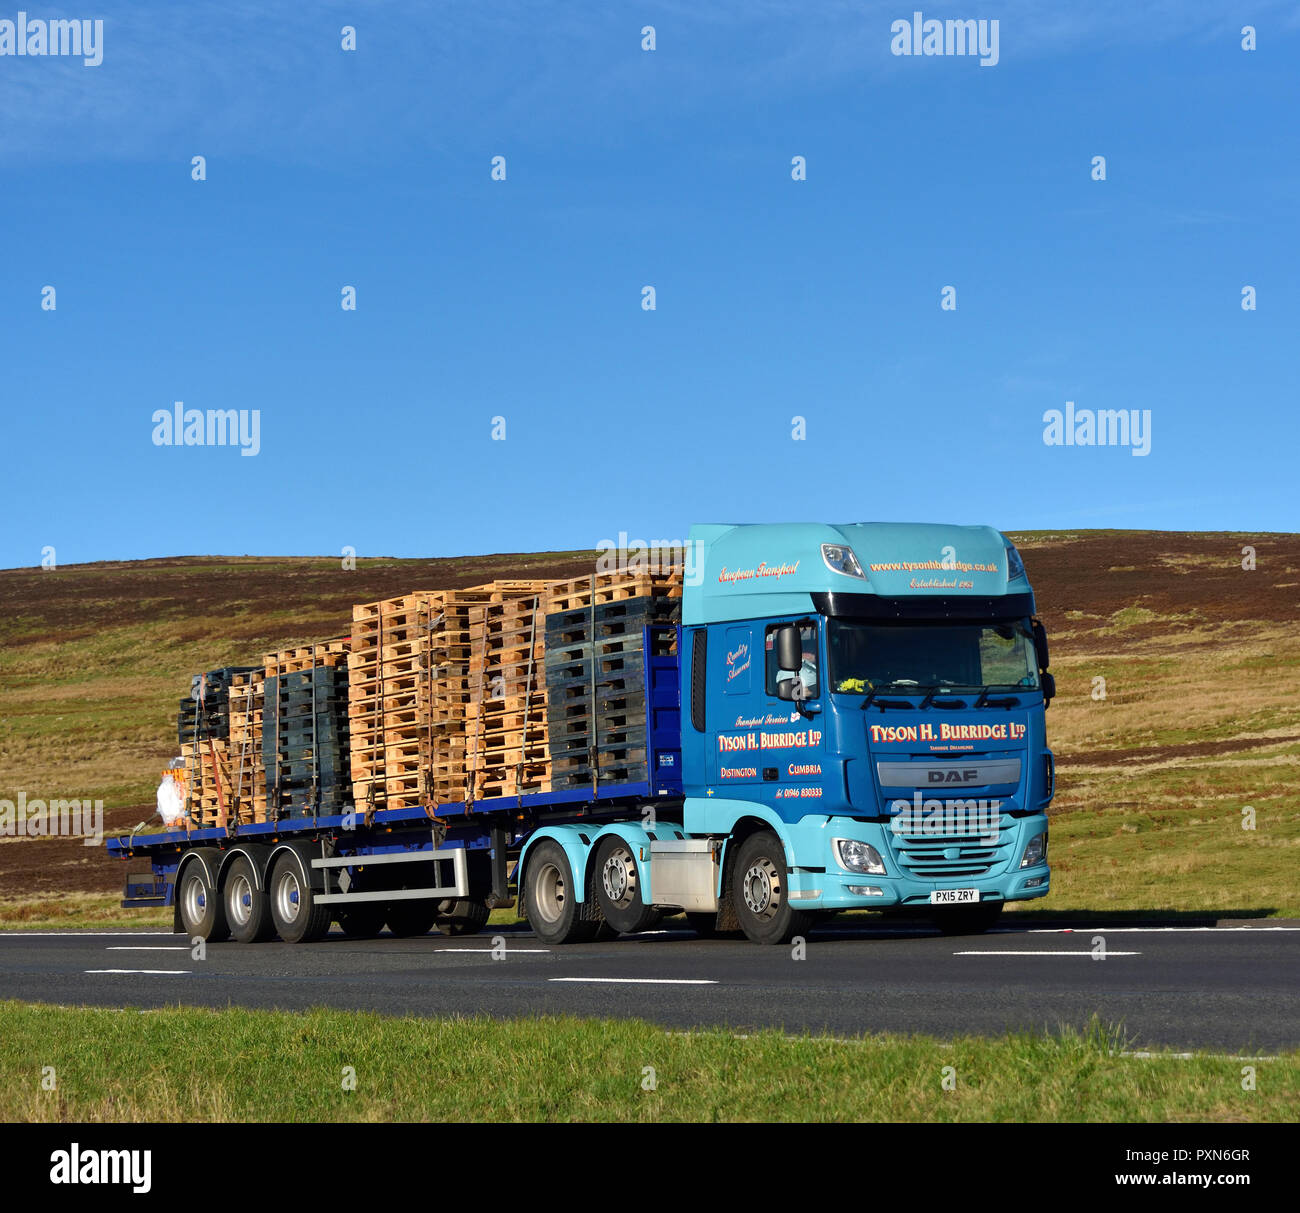 Tyson H. Burridge  Limited HGV, with load of wooden pallets. M6 motorway Southbound carriageway, Shap, Cumbria, England, United Kingdom, Europe. - Stock Image